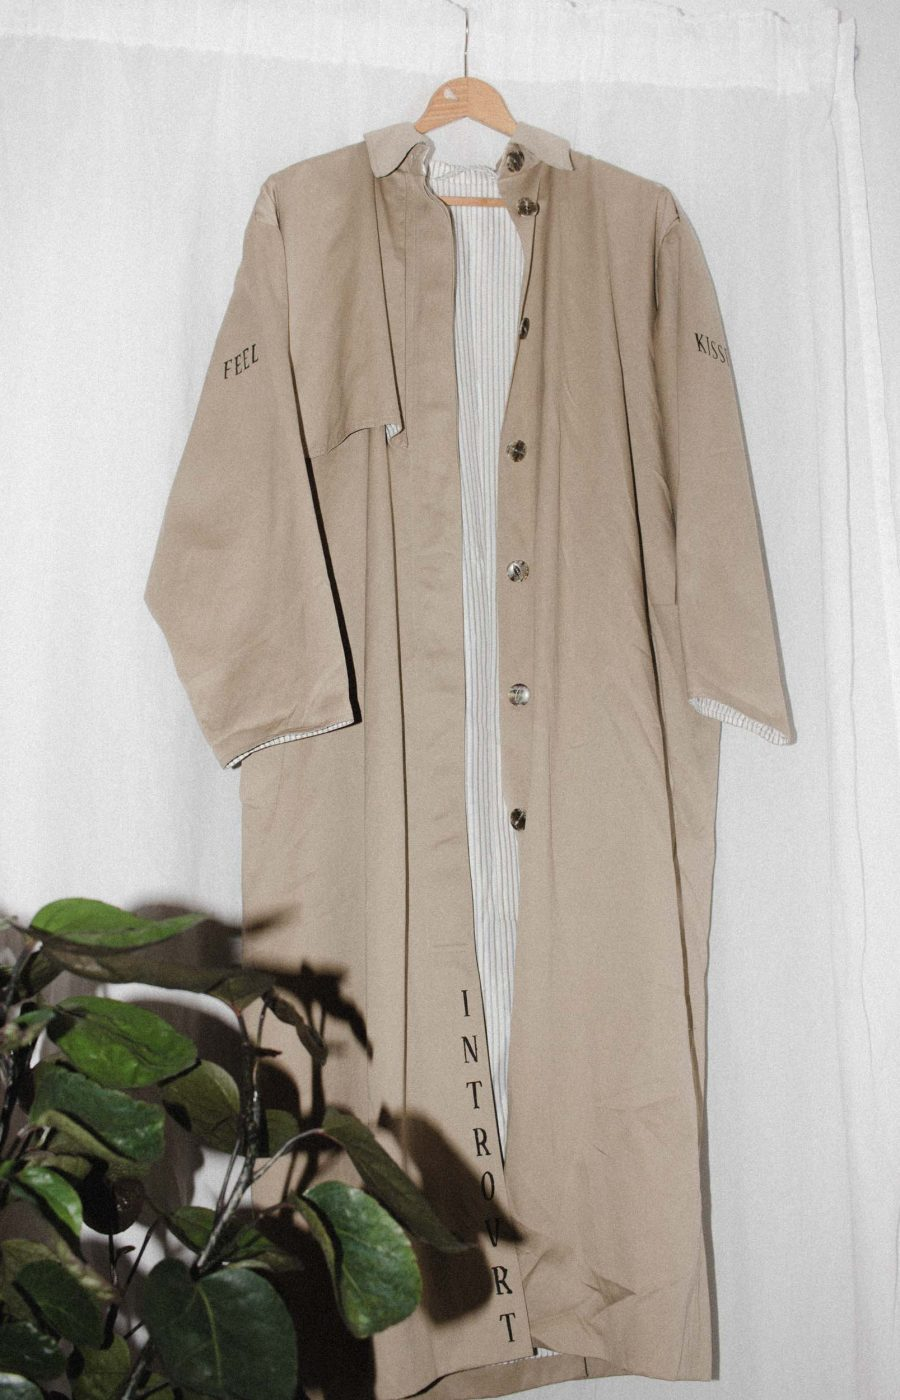 Beige Trenchcoat Unique Pieces Introvrt